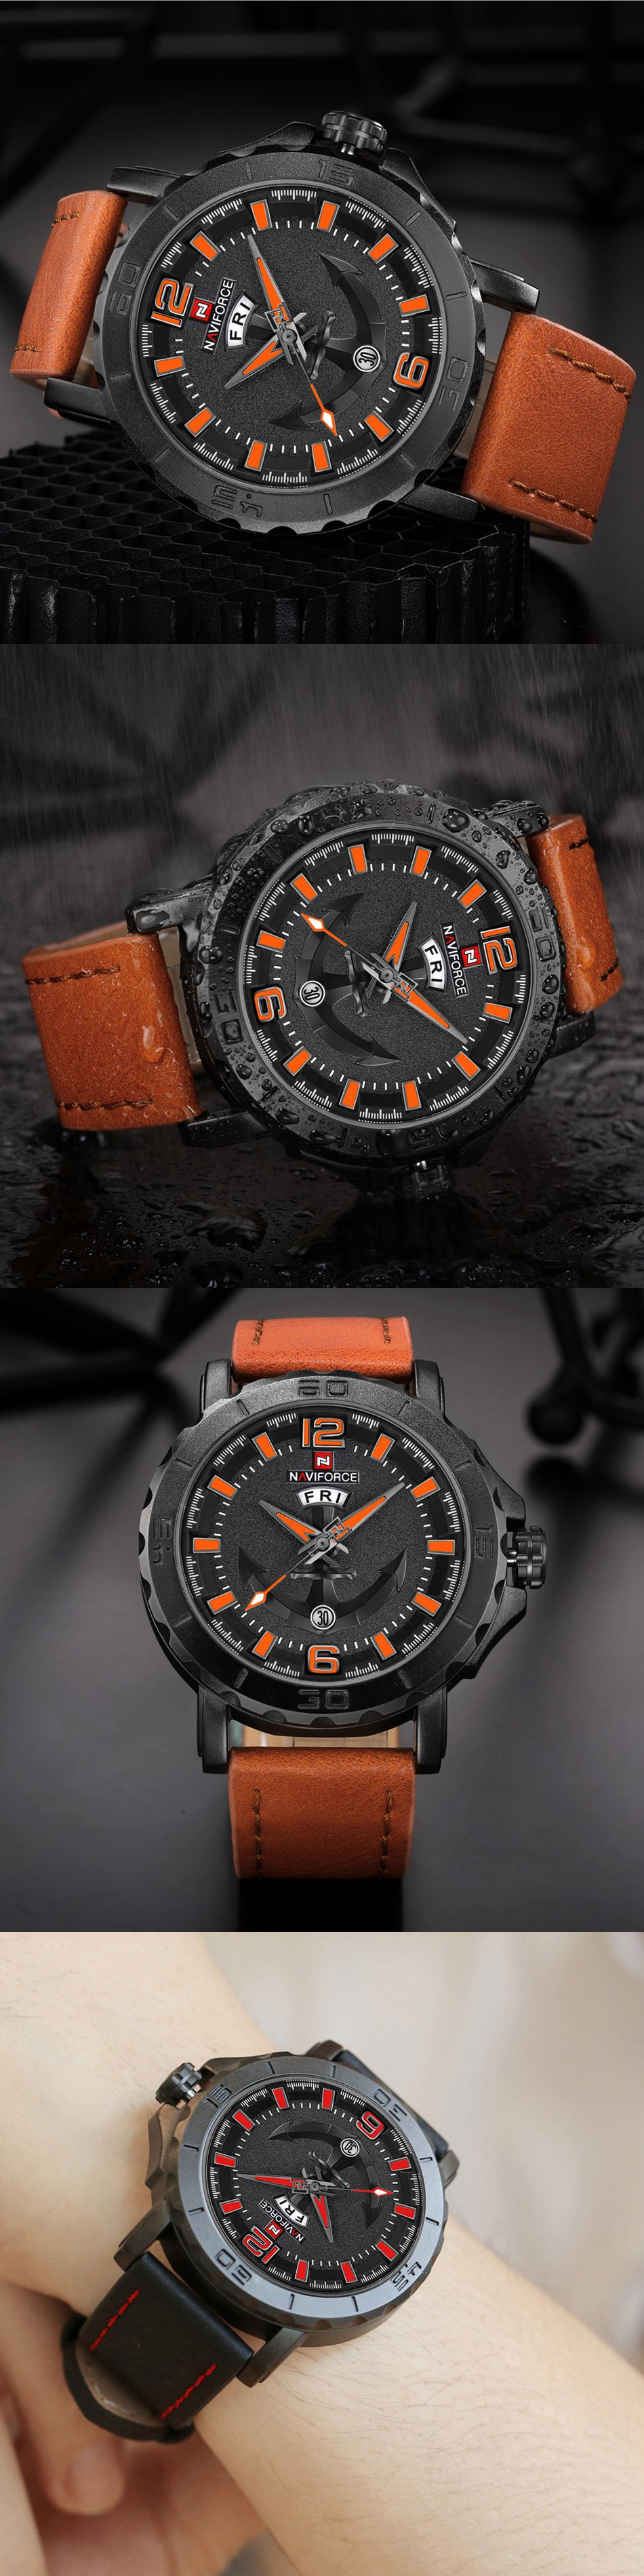 NAVIFORCE NF9122 Men Fashion Quartz Watch